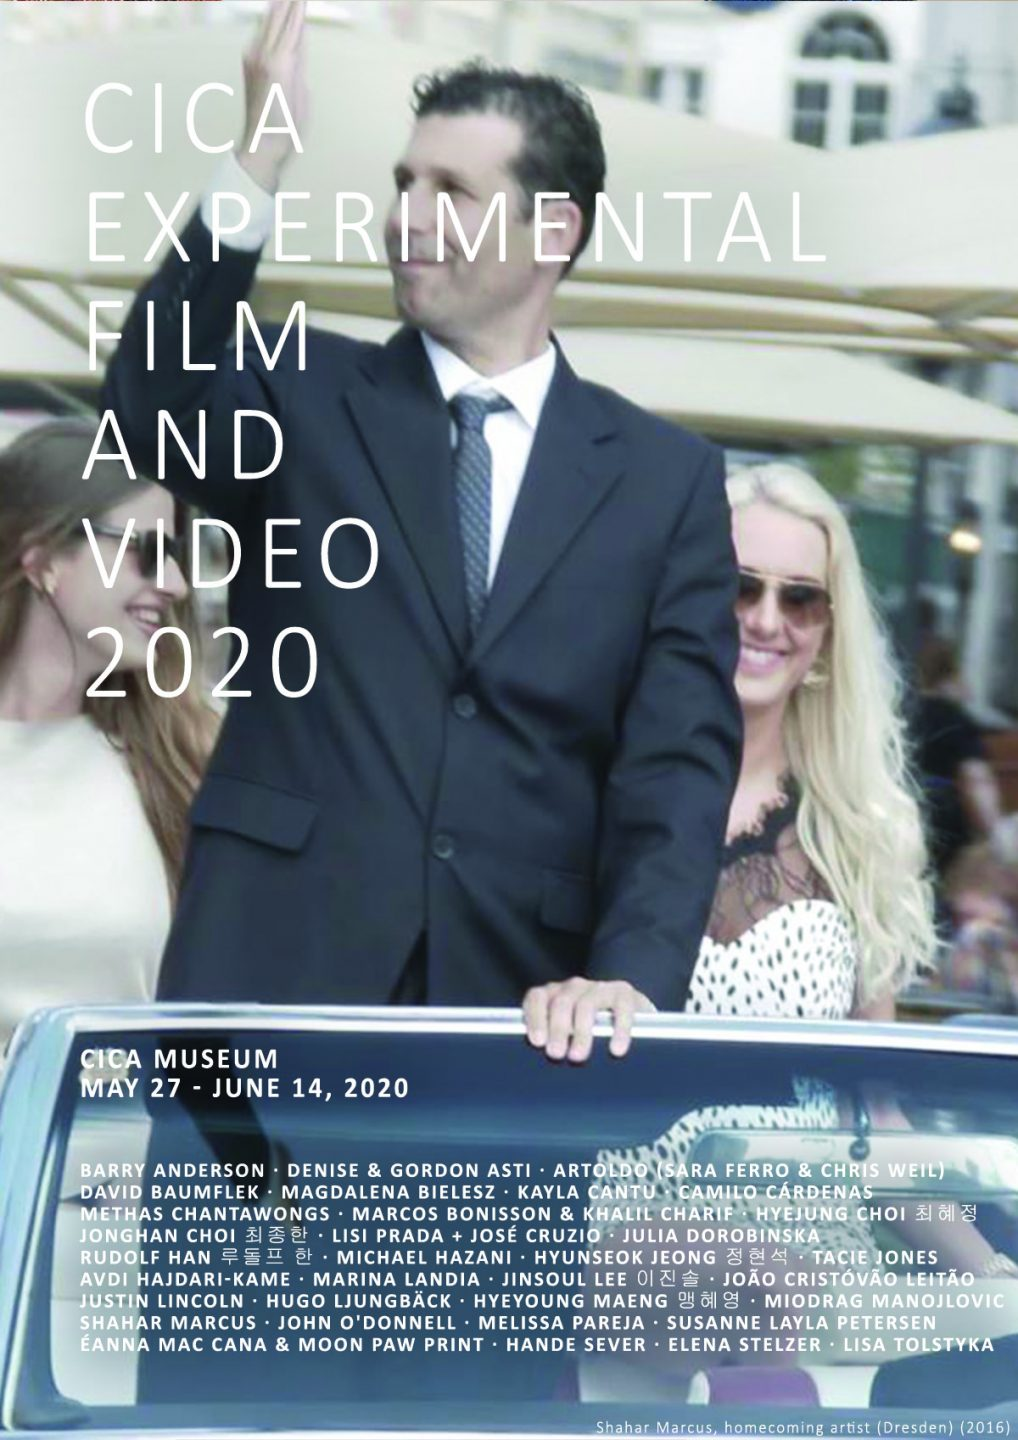 CICA Experimental Film and Video 2020